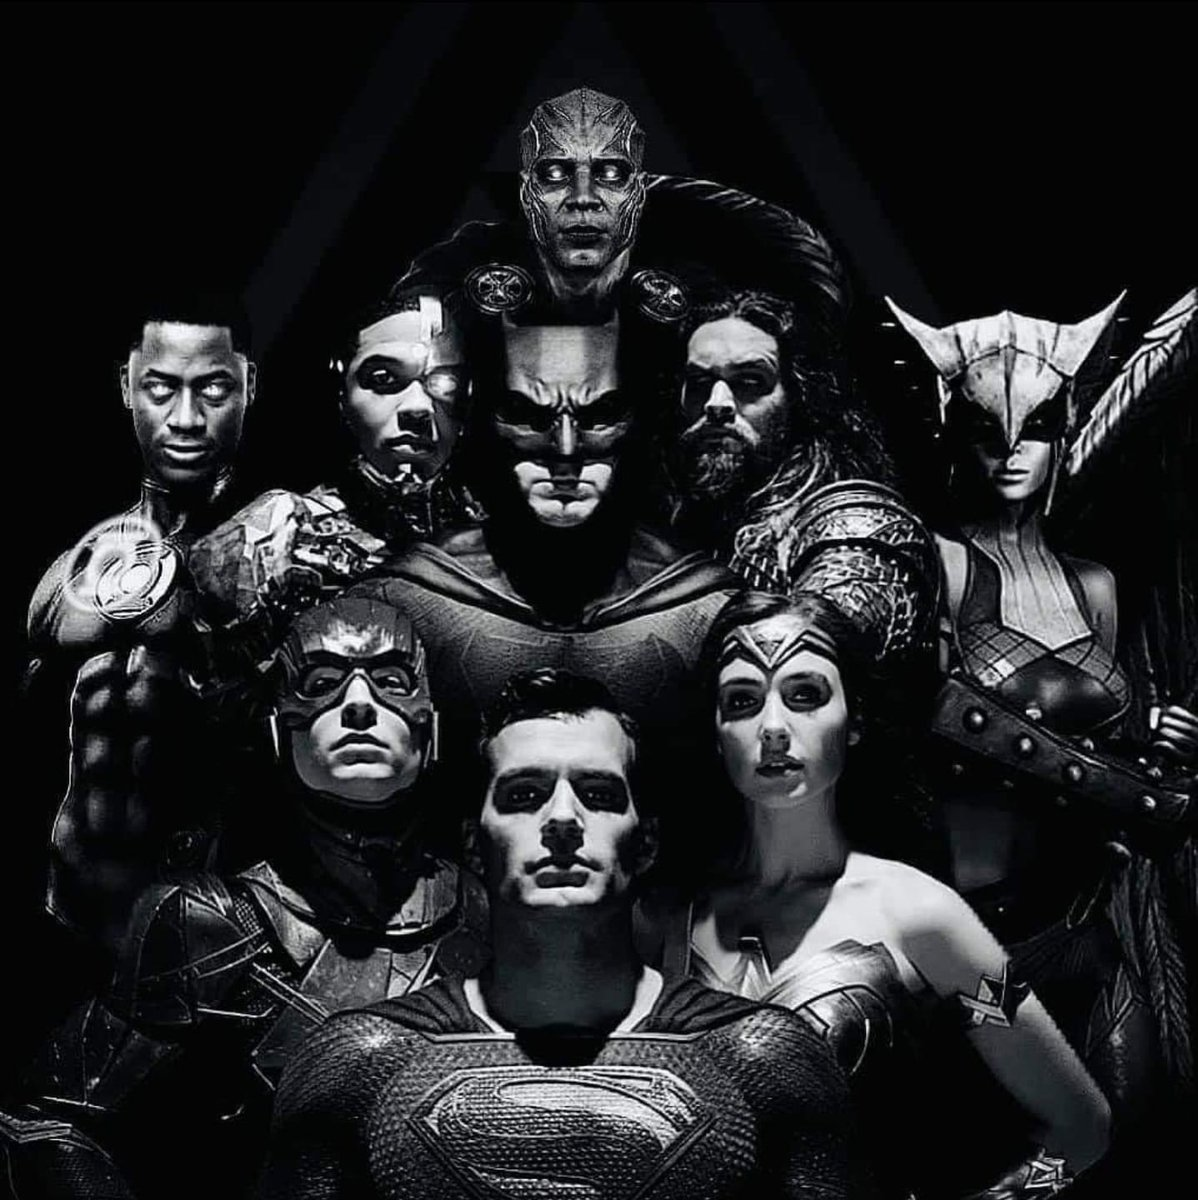 RT @EverythingDCFan: Imagine this ! Better yet, let's keep pushing for it ! #RestoreTheSnyderVerse https://t.co/RwduvQBUtO